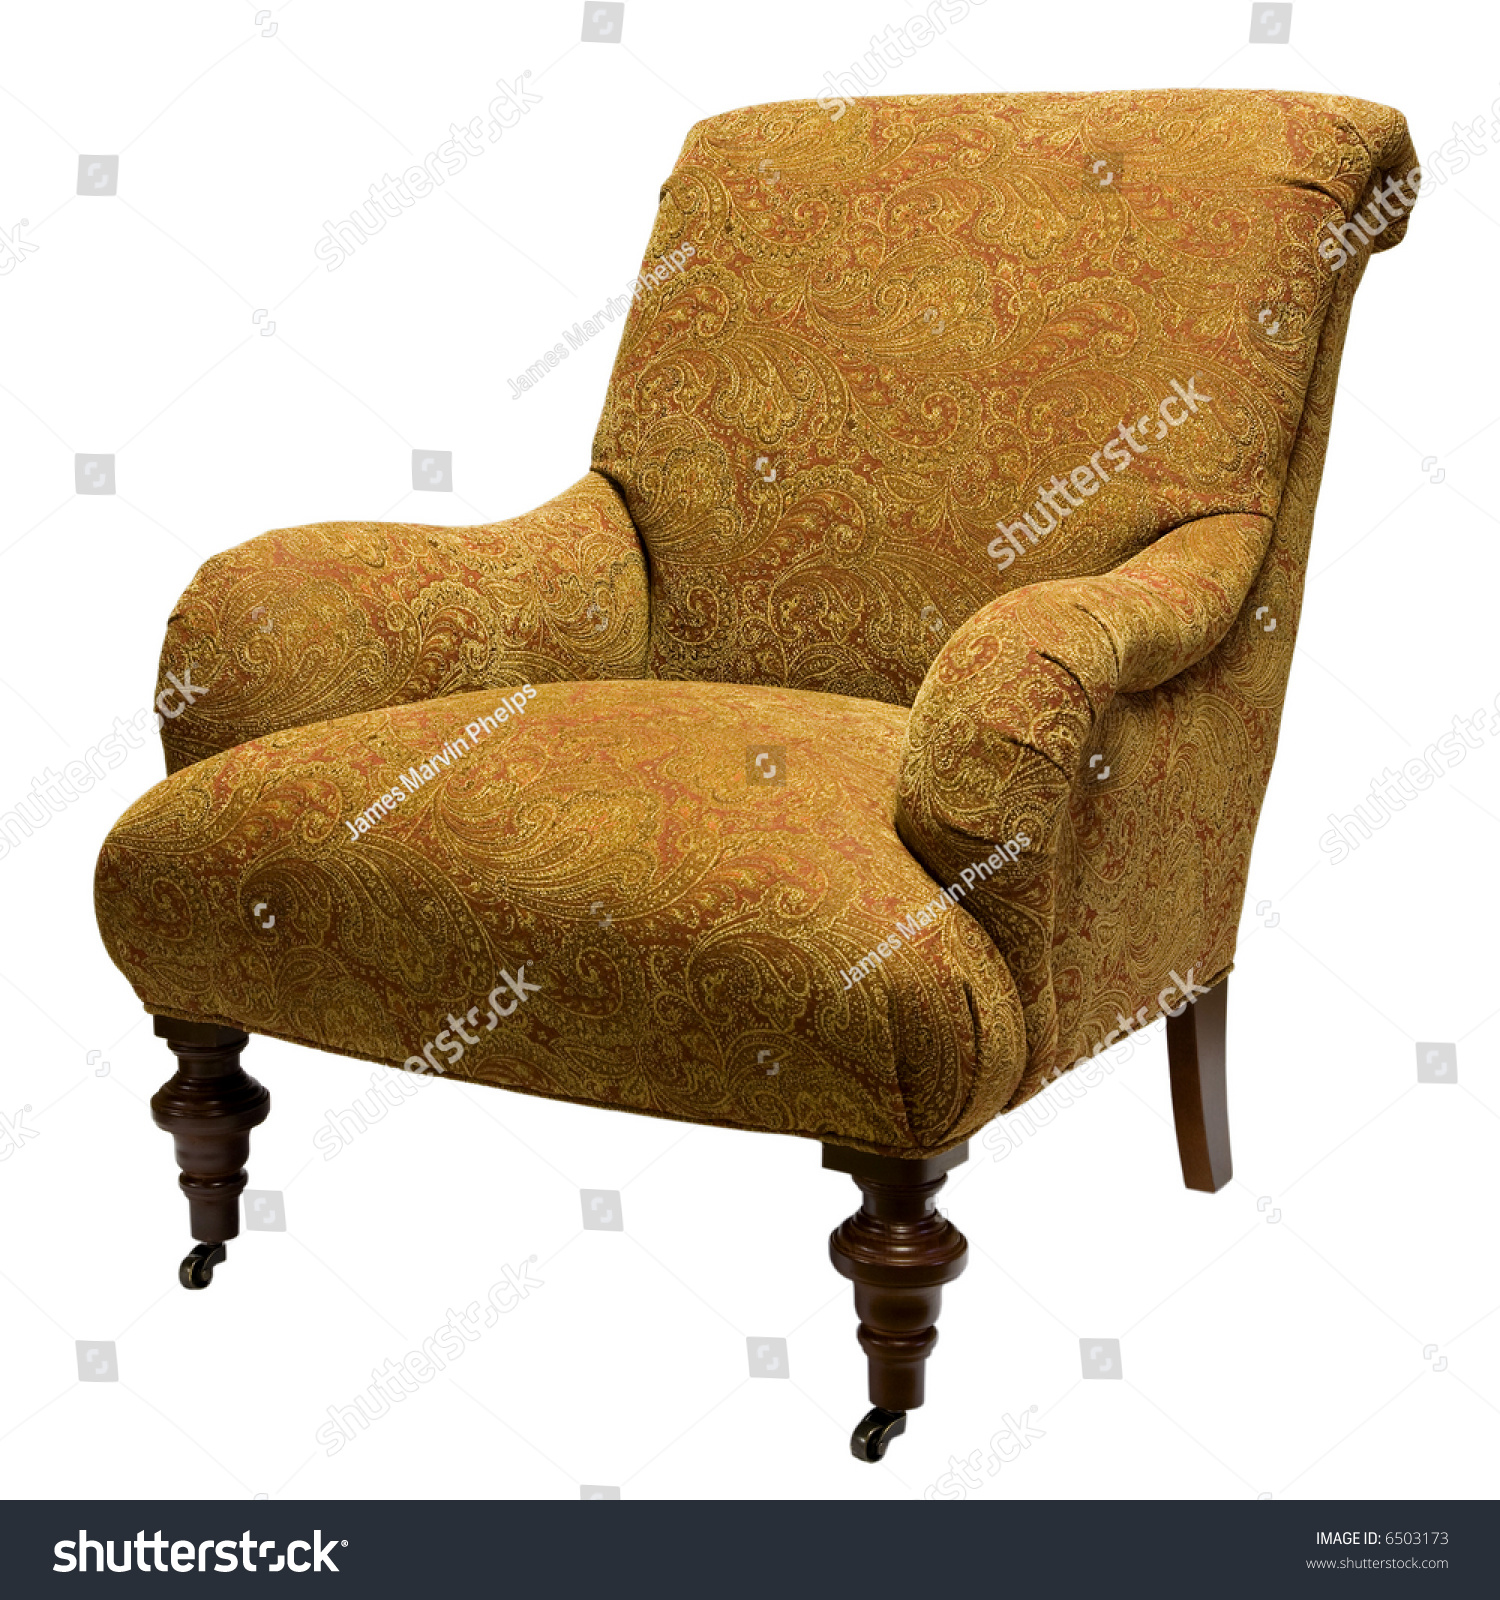 traditional occasional chairs chair with built in bookshelf style accent stock photo 6503173